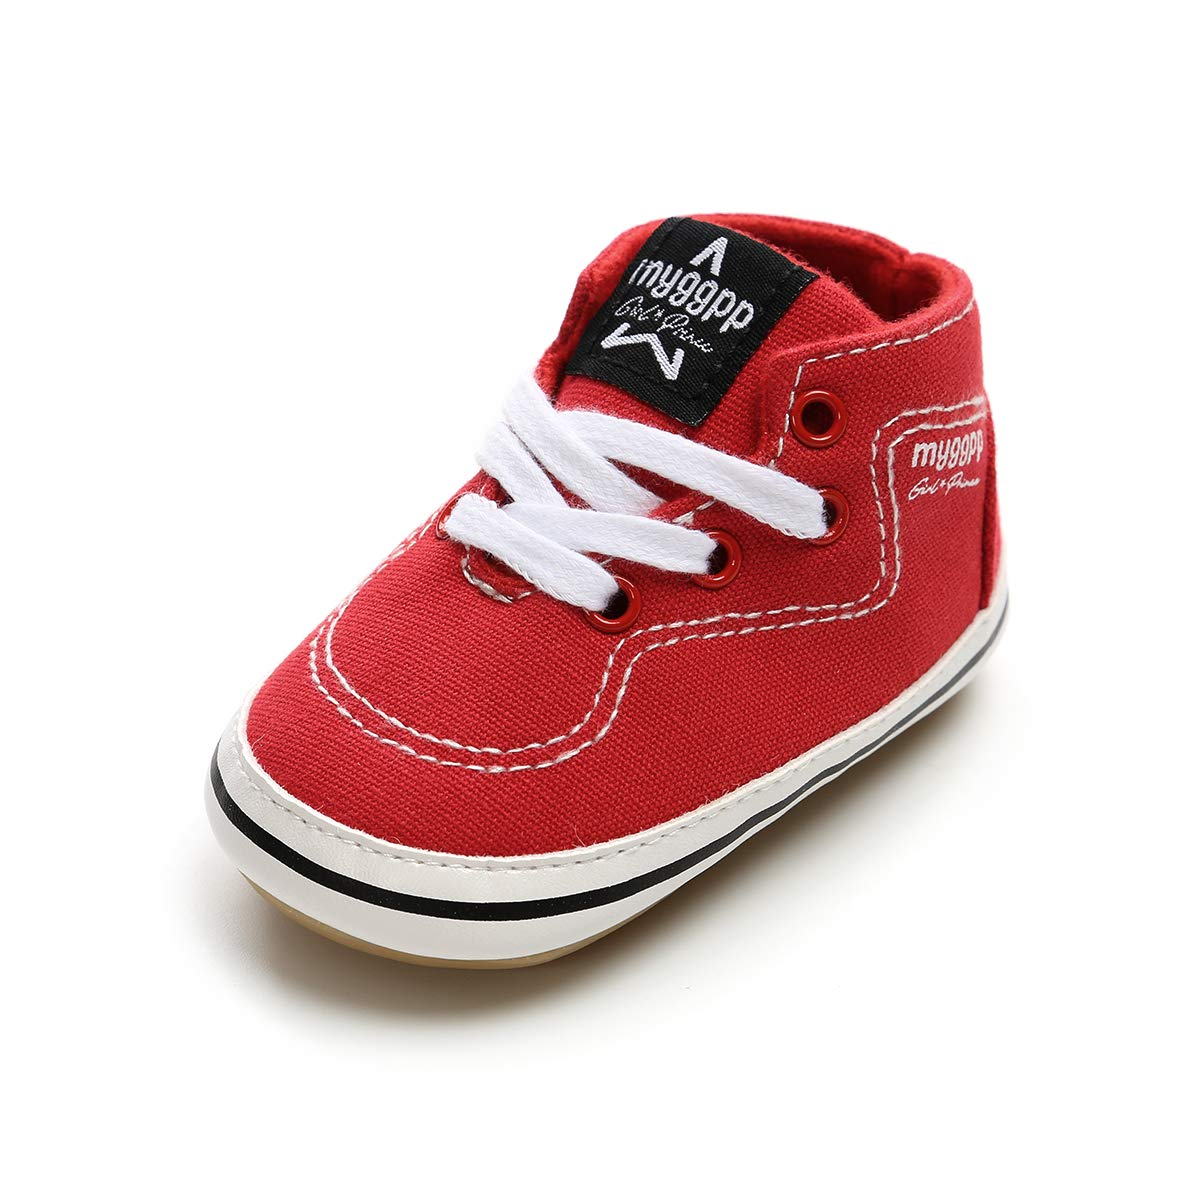 Baby Boys Girls Canvas Shoes Basic Sneakers Lace Up Infant First Walker Shoes(0-18 Months) (13cm(12-18 Months), G-Red)